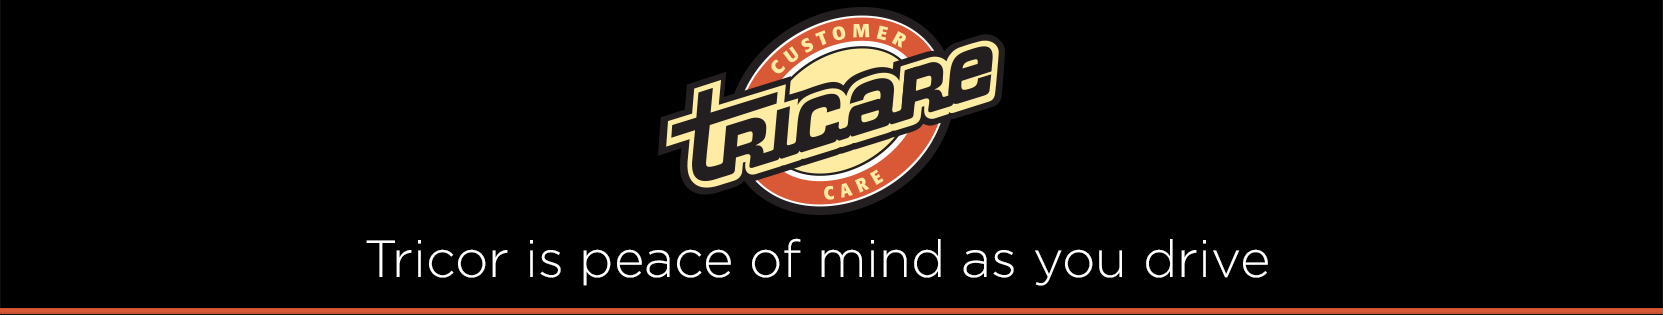 Tricare-protection